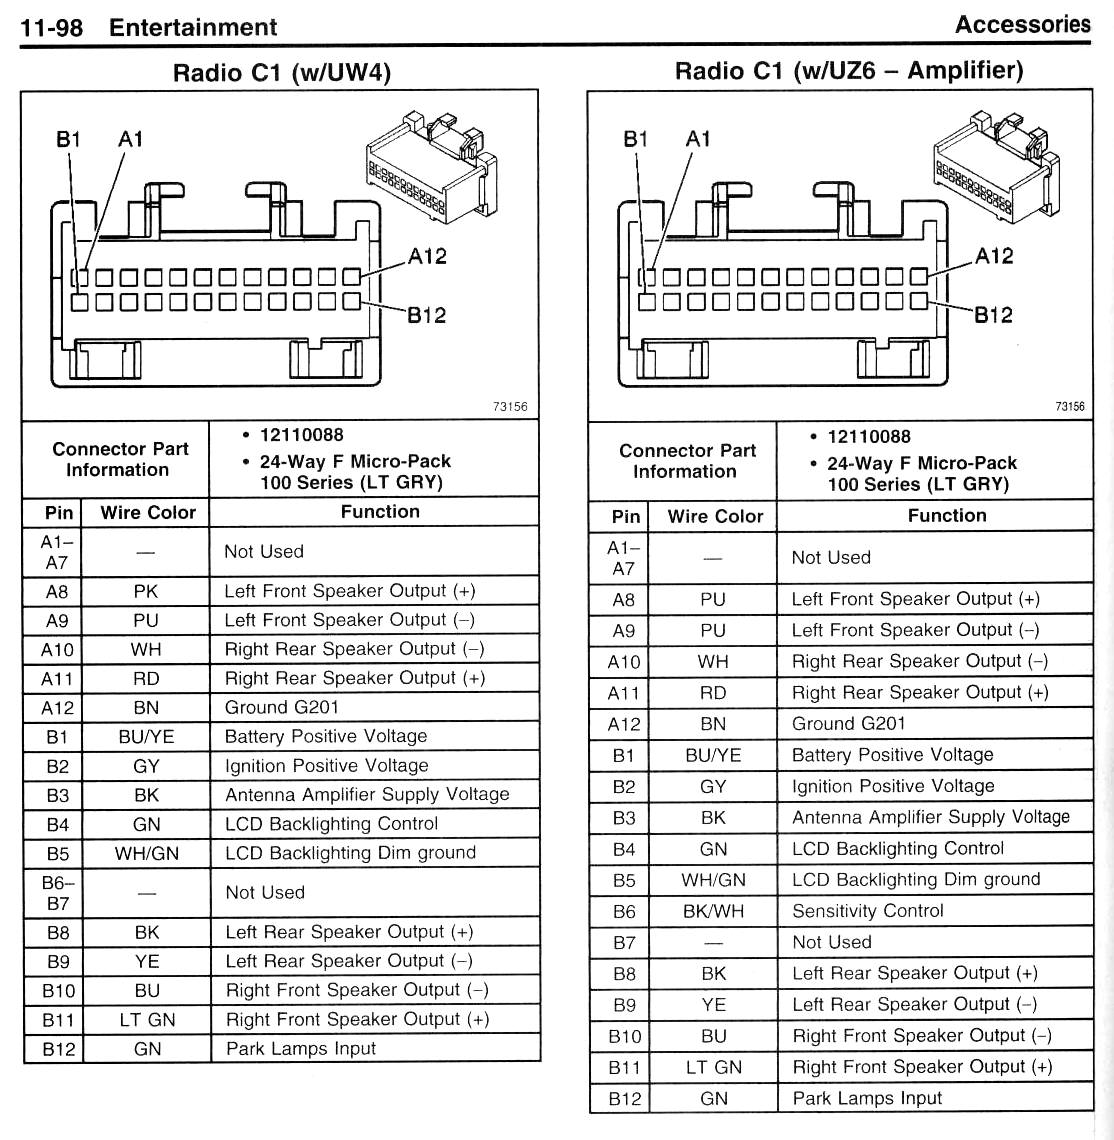 Pontiac Vibe stereo wiring connector pontiac car radio stereo audio wiring diagram autoradio connector 2007 chevrolet silverado radio wiring harness at bayanpartner.co